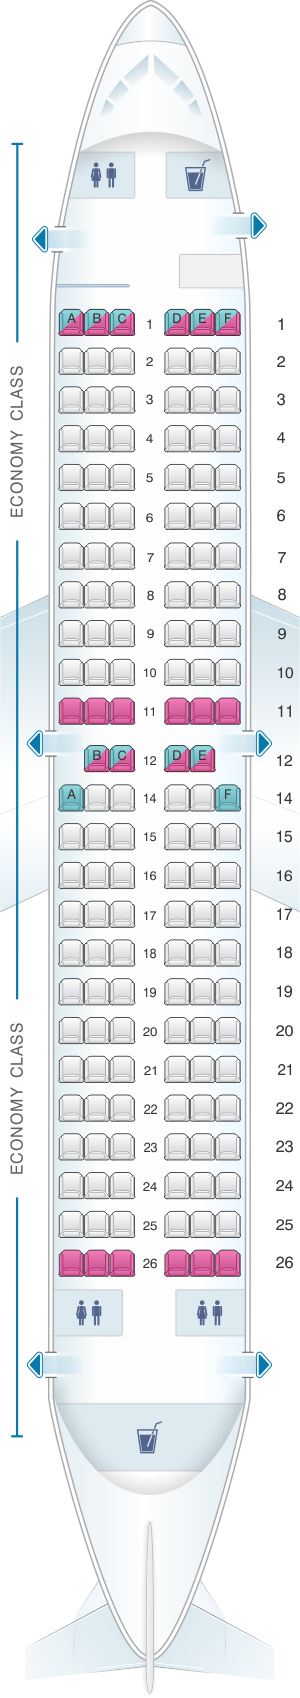 Seat map for TUIfly Boeing B737 300